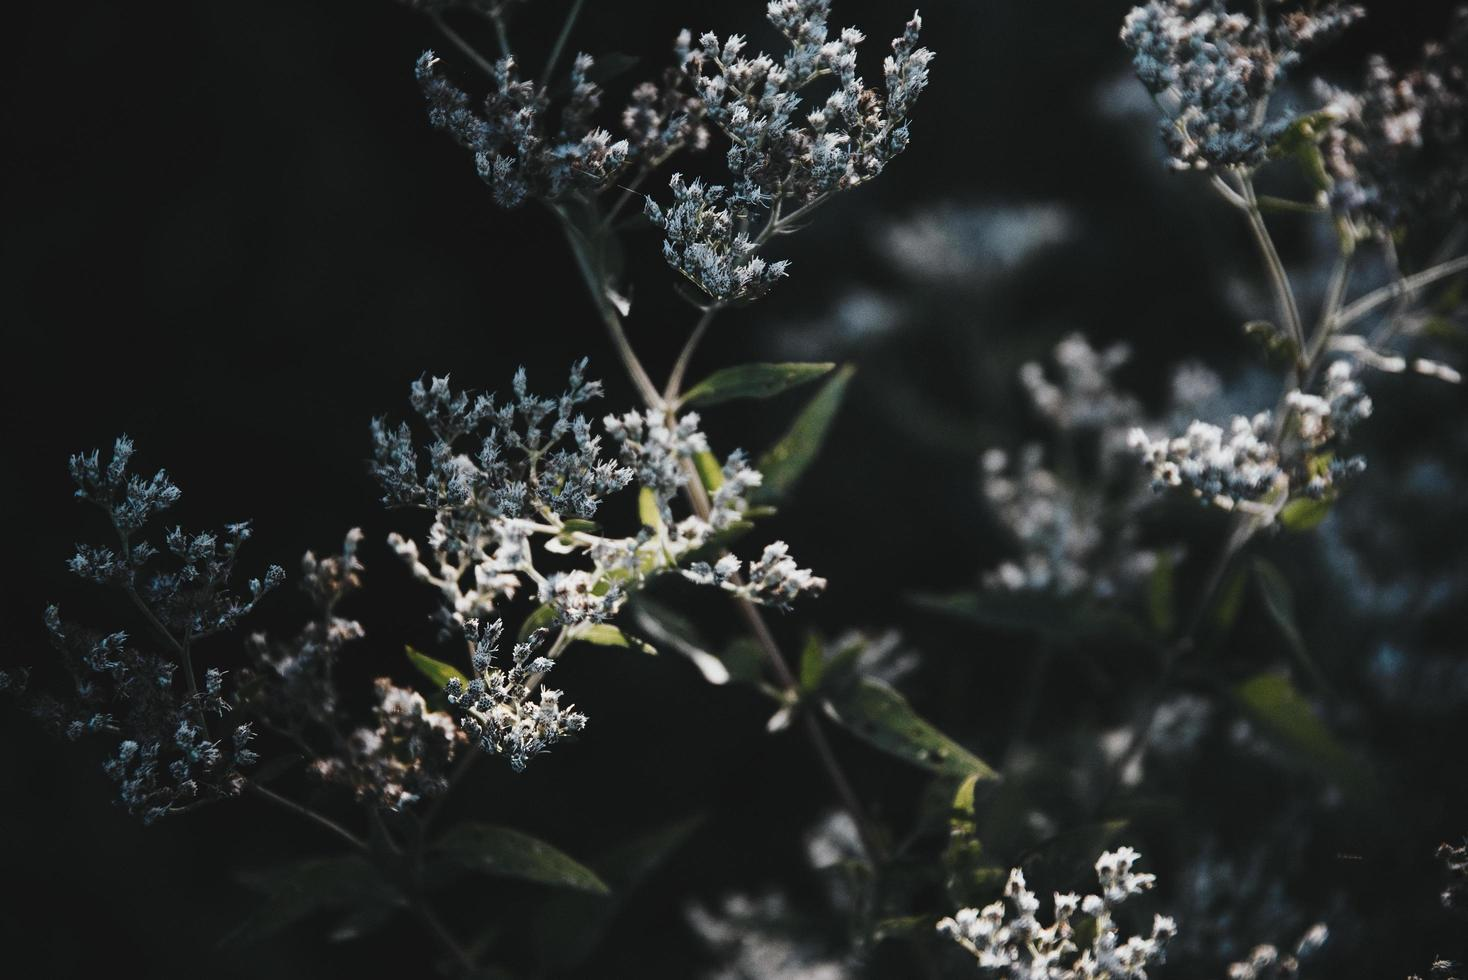 Close up photo of flowers